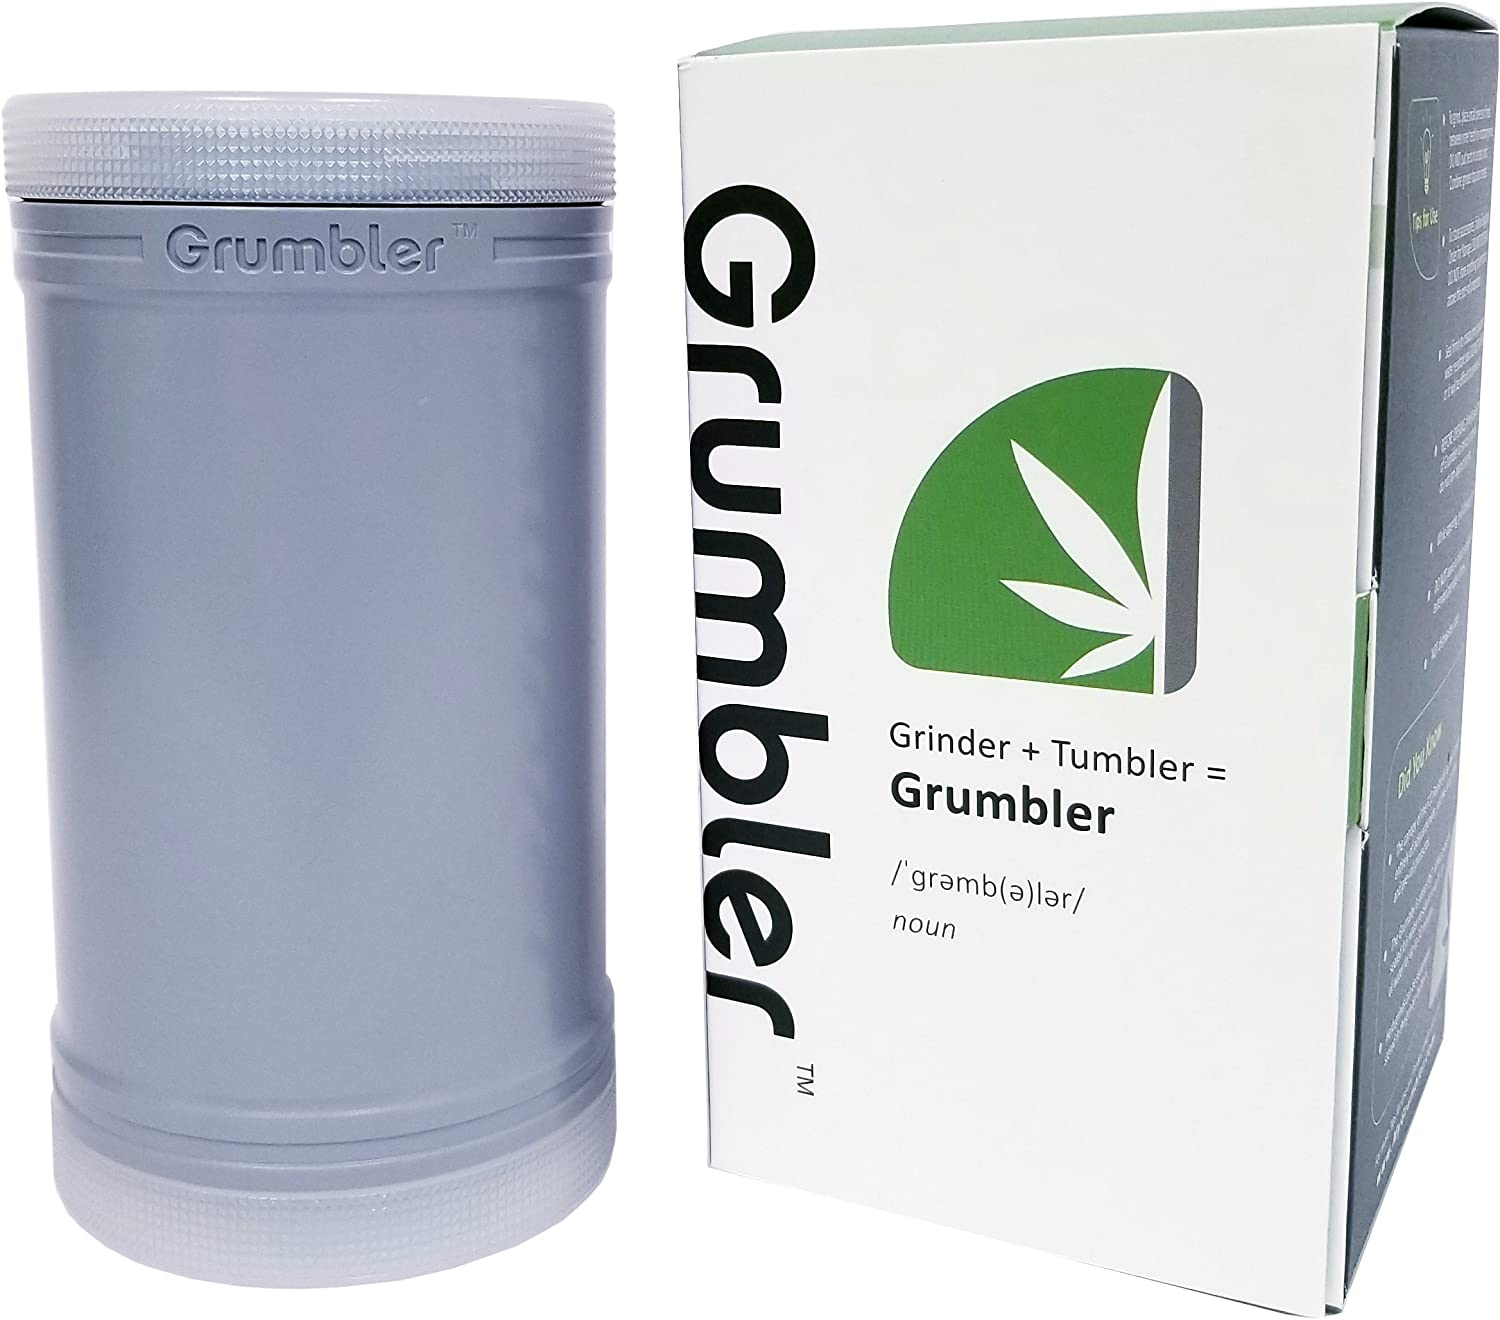 MyGrumbler.com Grumbler - Medical Herb and Accessory Storage Case w/Detachable Grinder, Pre-Roll Protector, Grinds Funnel. Smell Proof, Food Safe, Child Resistant (Executive Grey)